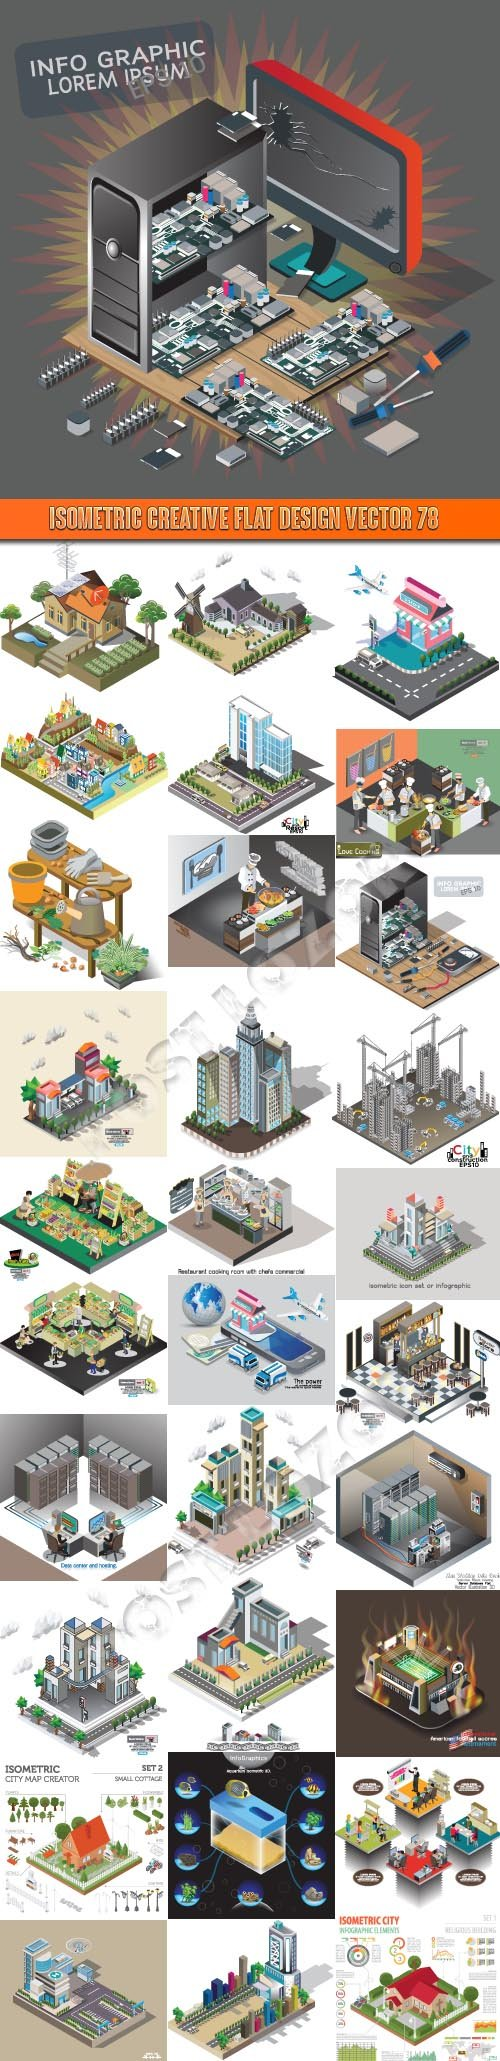 Isometric creative flat design vector 78